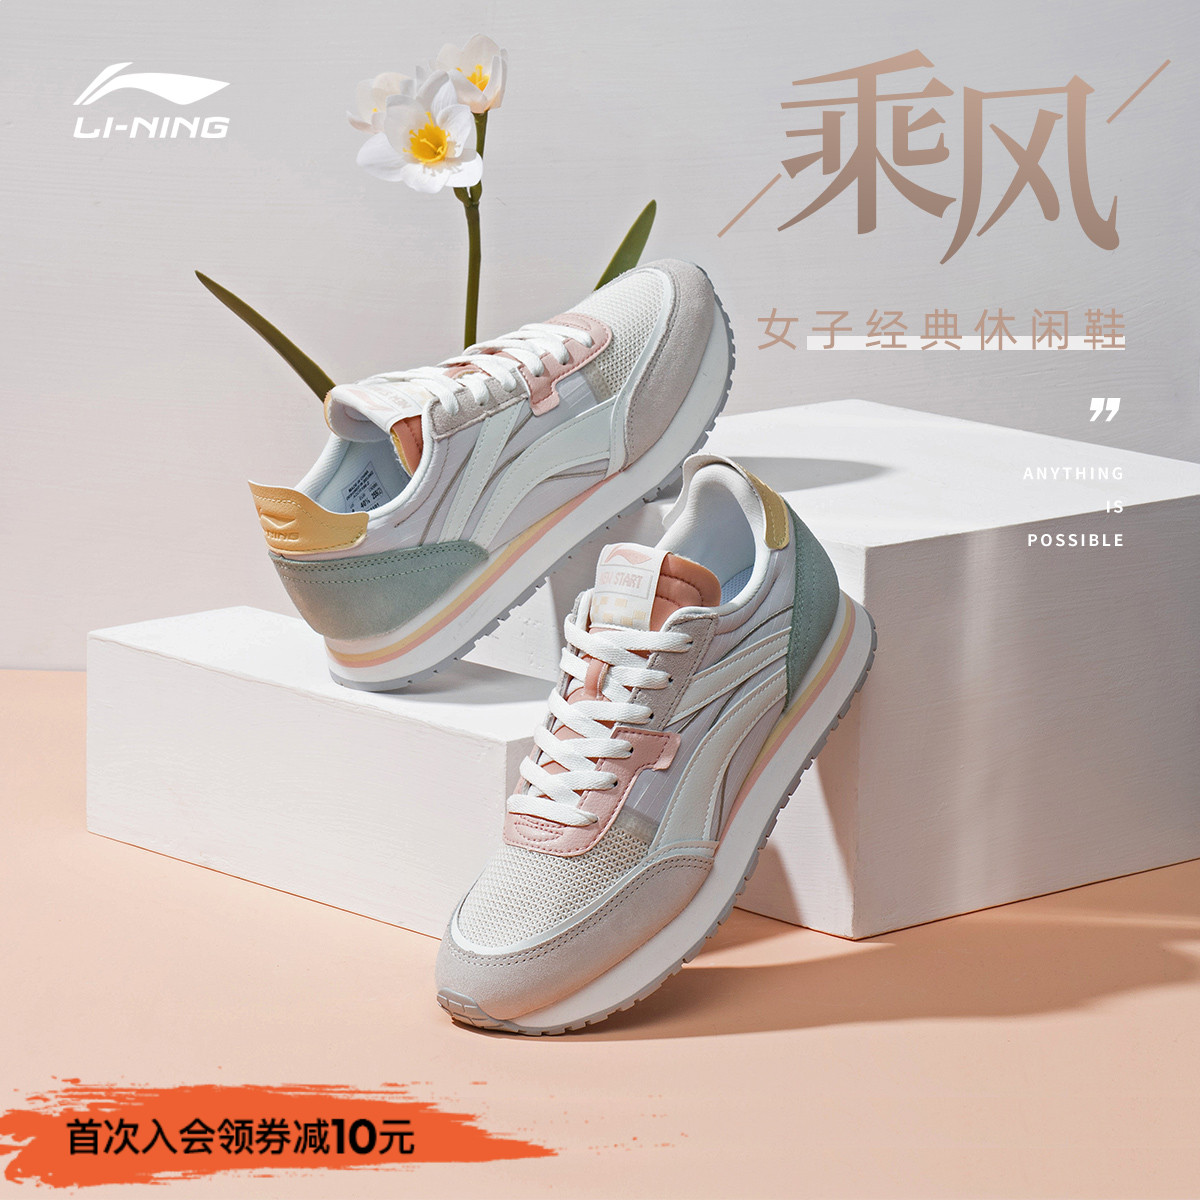 Brilliance Yu Tong Li Ning casual shoes multi-wind women's shoes 2021 summer new ventilation retro Gan Skin shoes